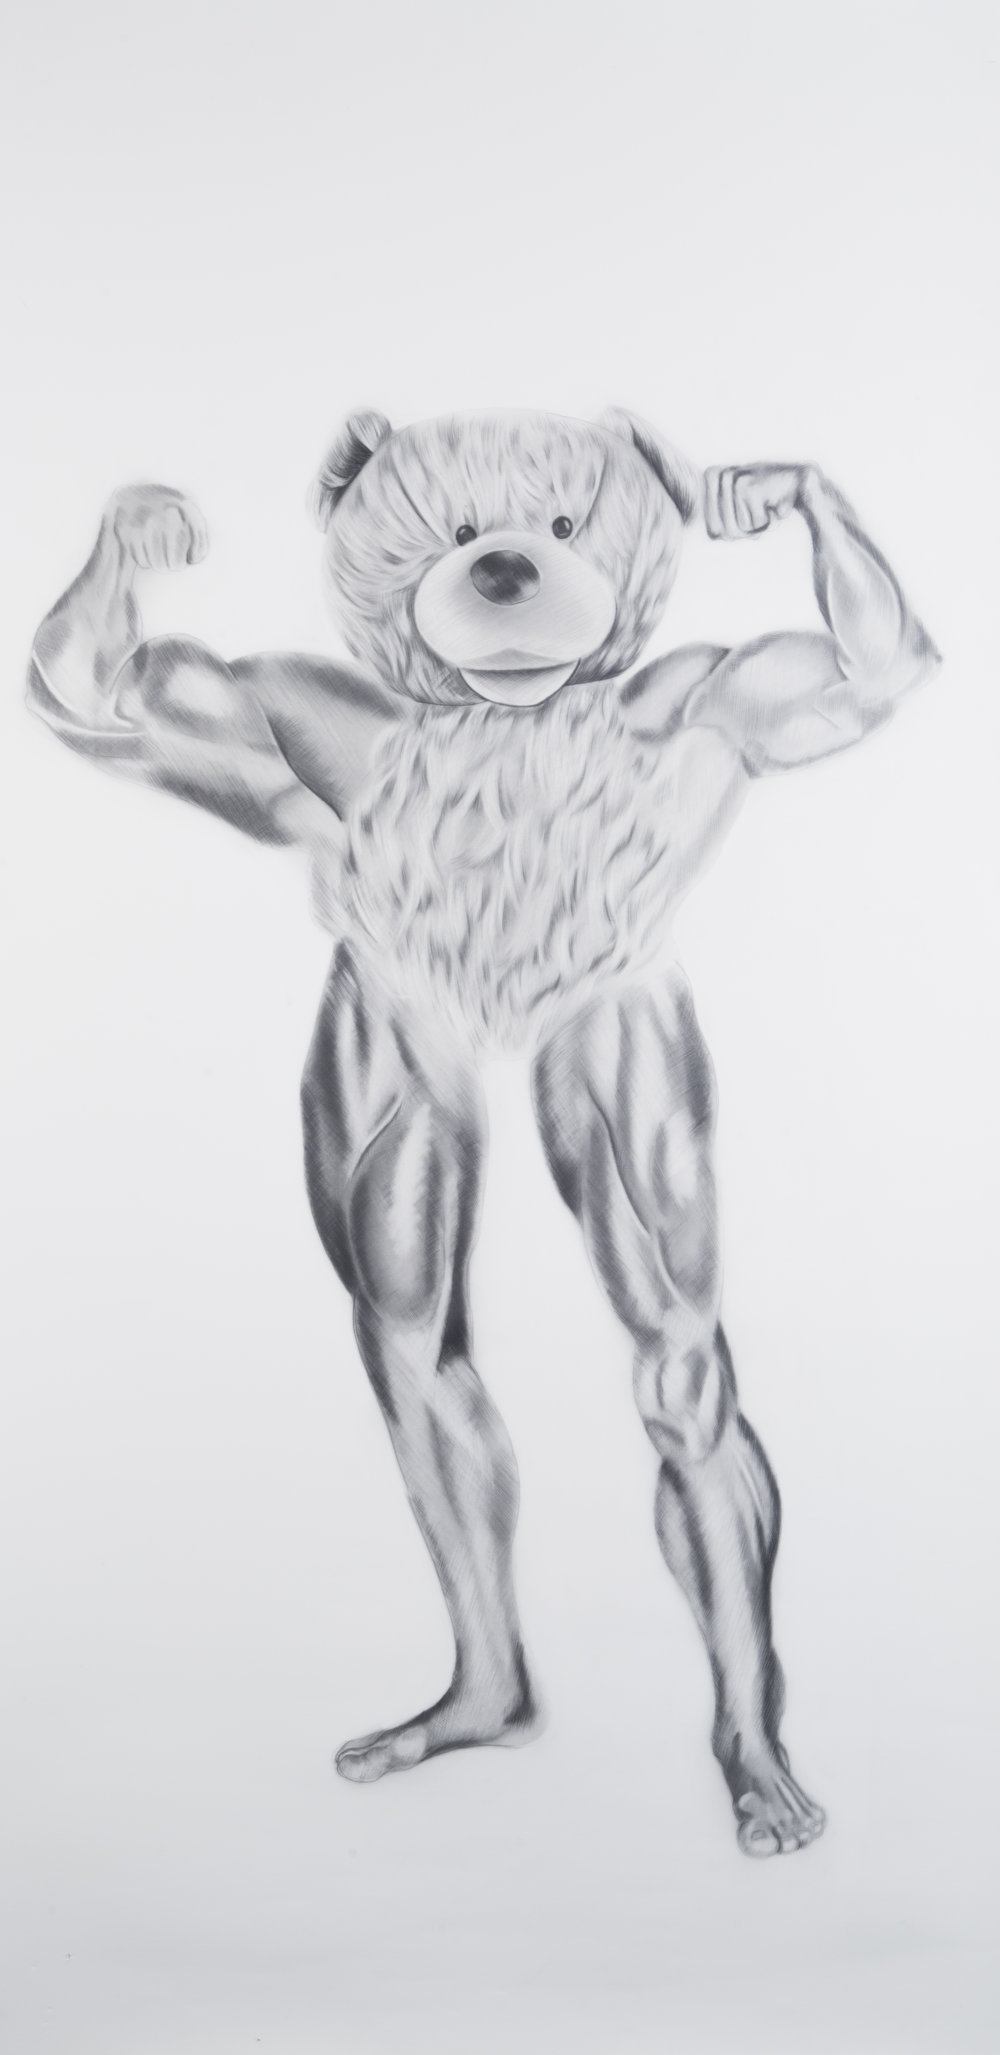 Suns Out Guns Out #2, 24 x 48 inches. Graphite on paper. 2017